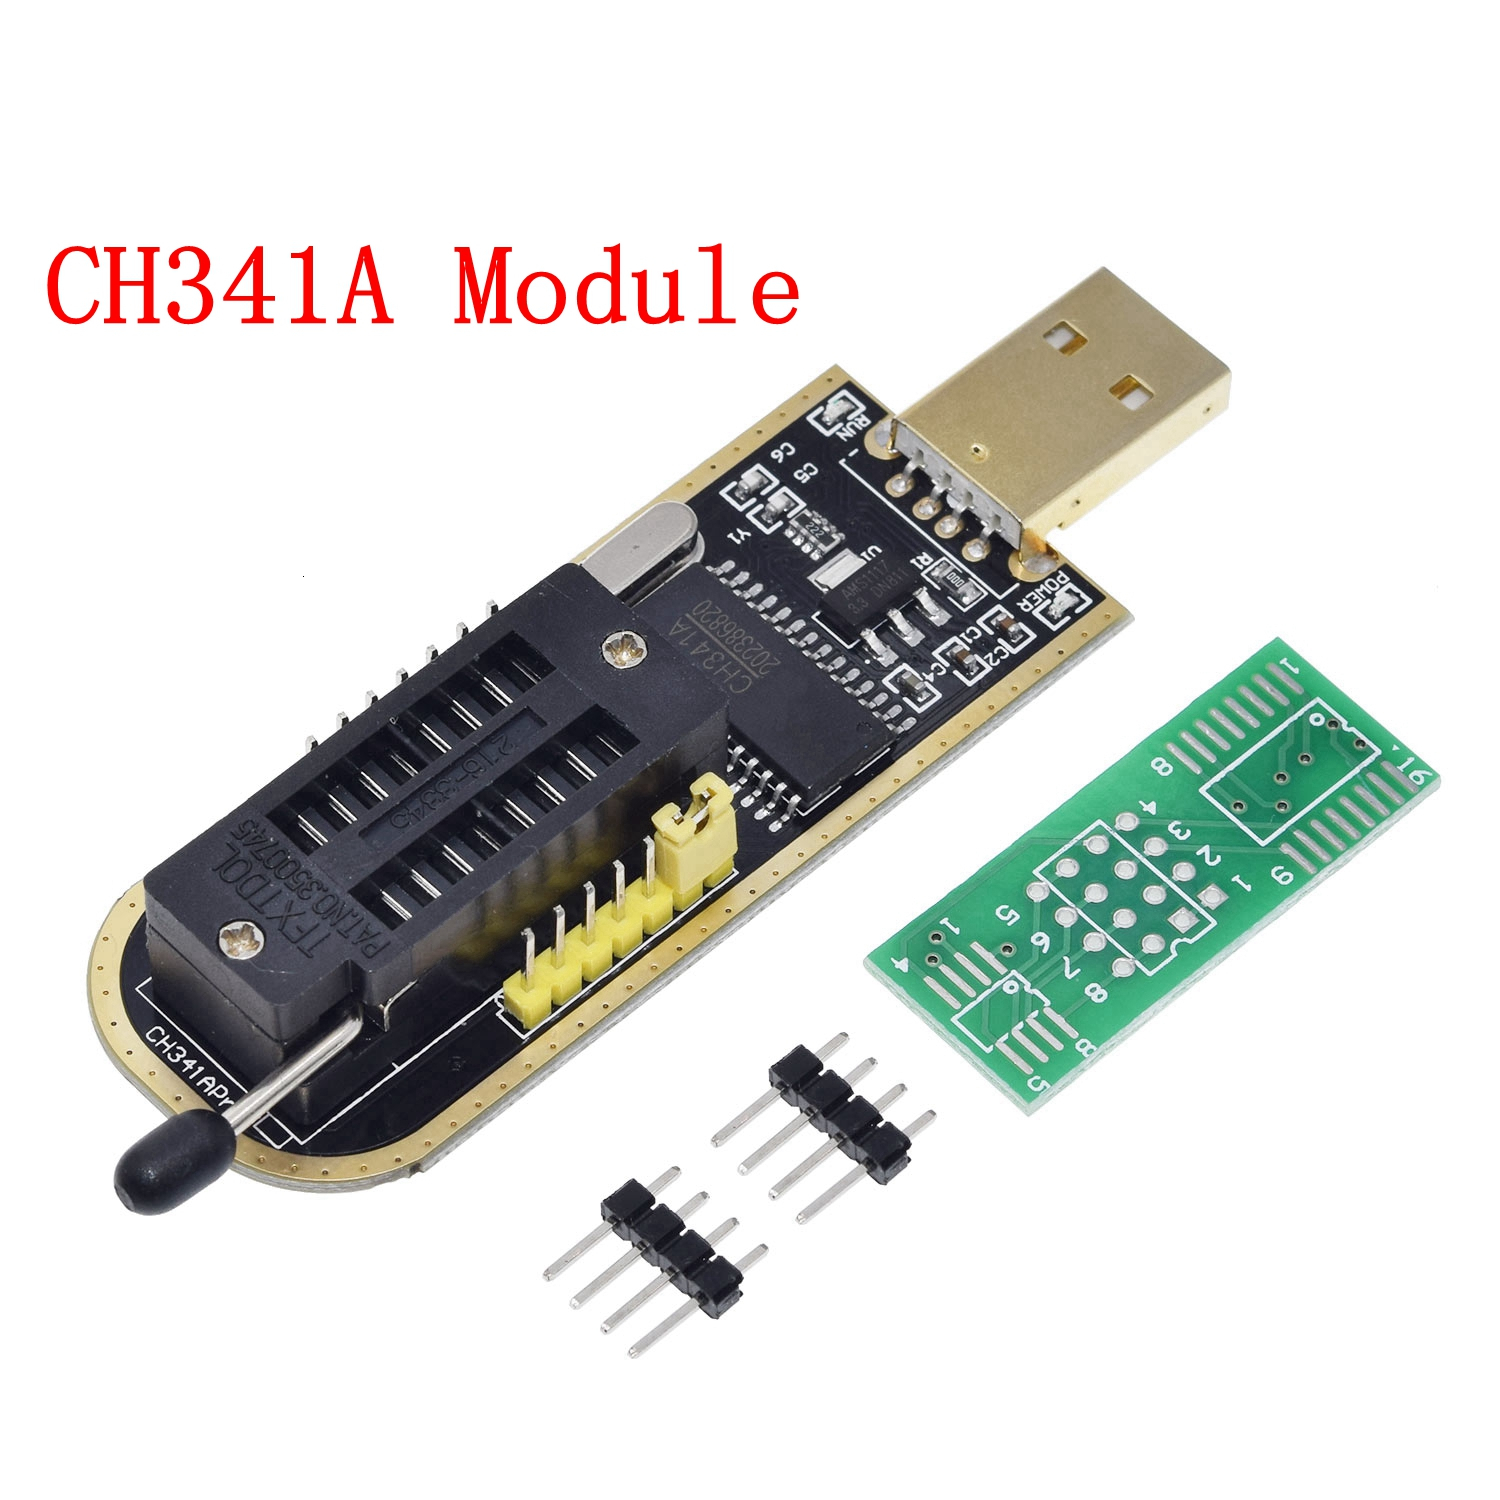 Image 3 - TZT CH341A 24 25 Series EEPROM Flash BIOS USB Programmer Module + SOIC8 SOP8 Test Clip For EEPROM 93CXX / 25CXX / 24CXX-in Integrated Circuits from Electronic Components & Supplies